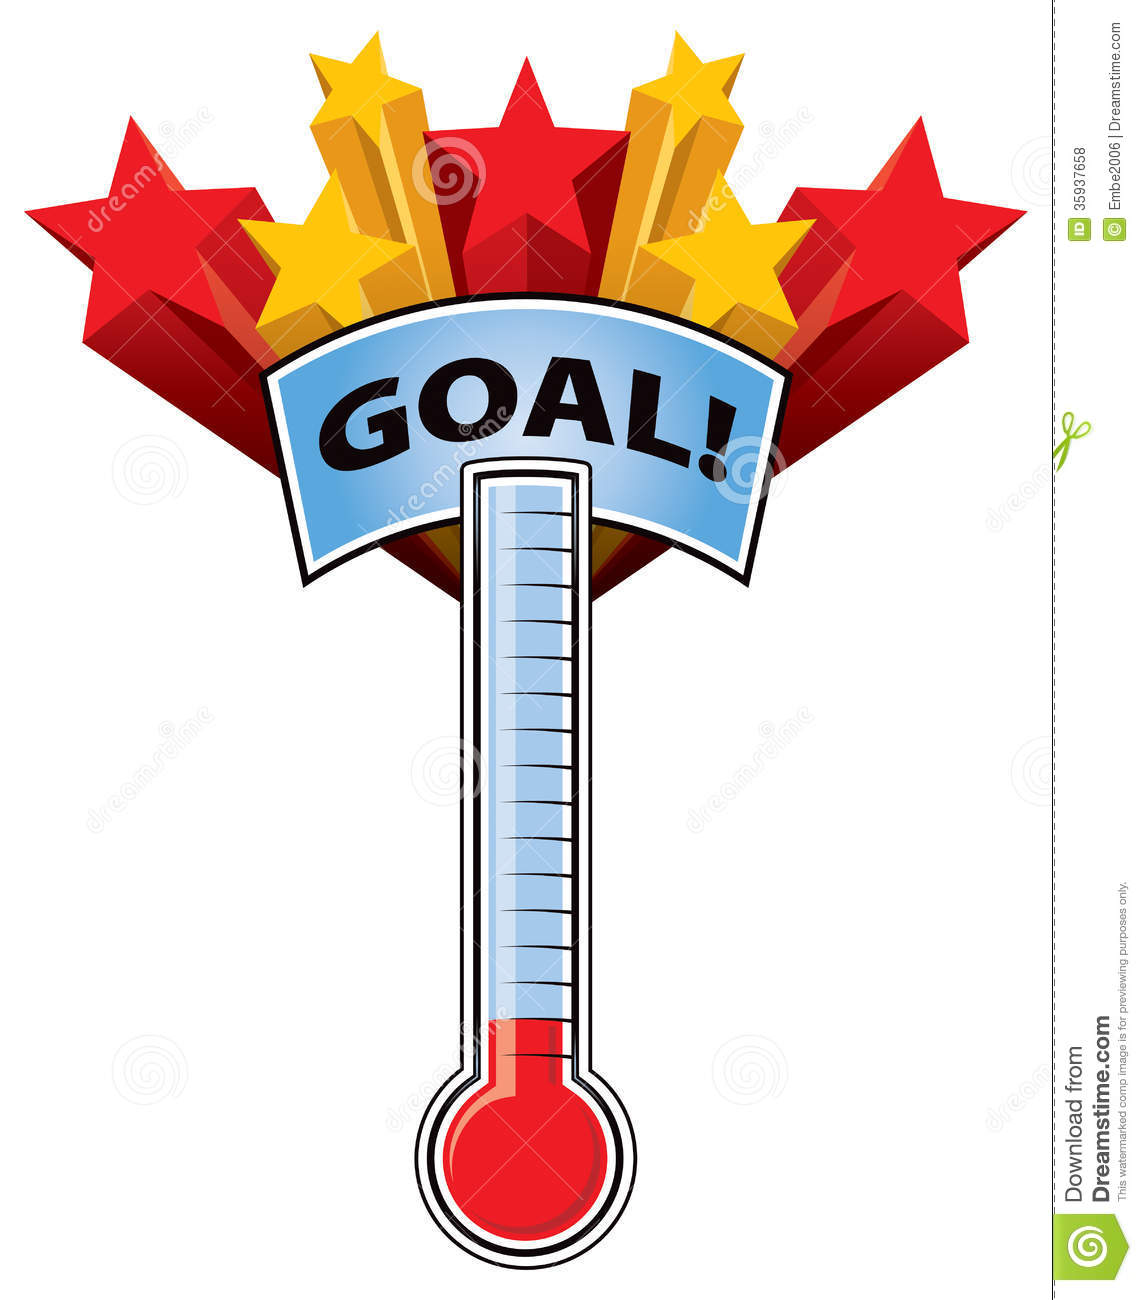 Goal Setting Thermometer Clipart - Clipart Kid